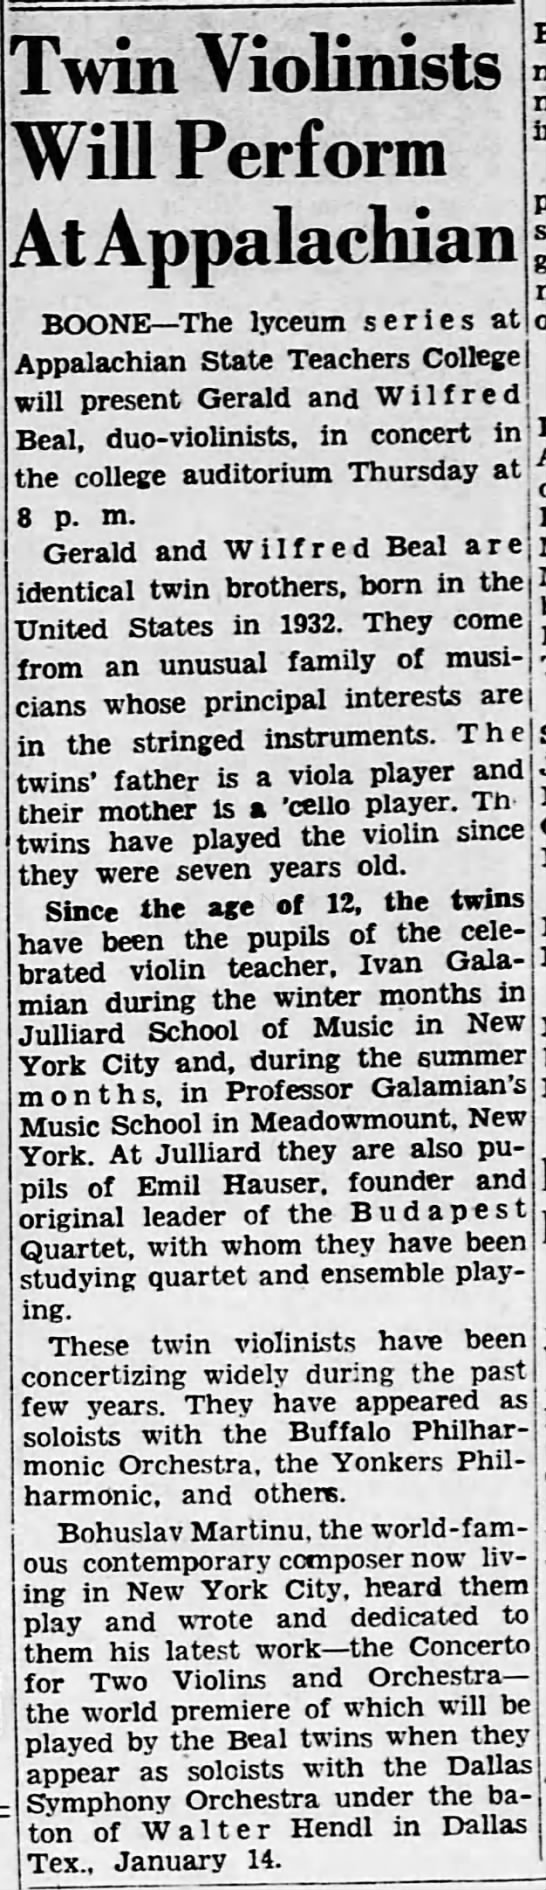 Twin violinists will perform at Appalachian 26/11/1950